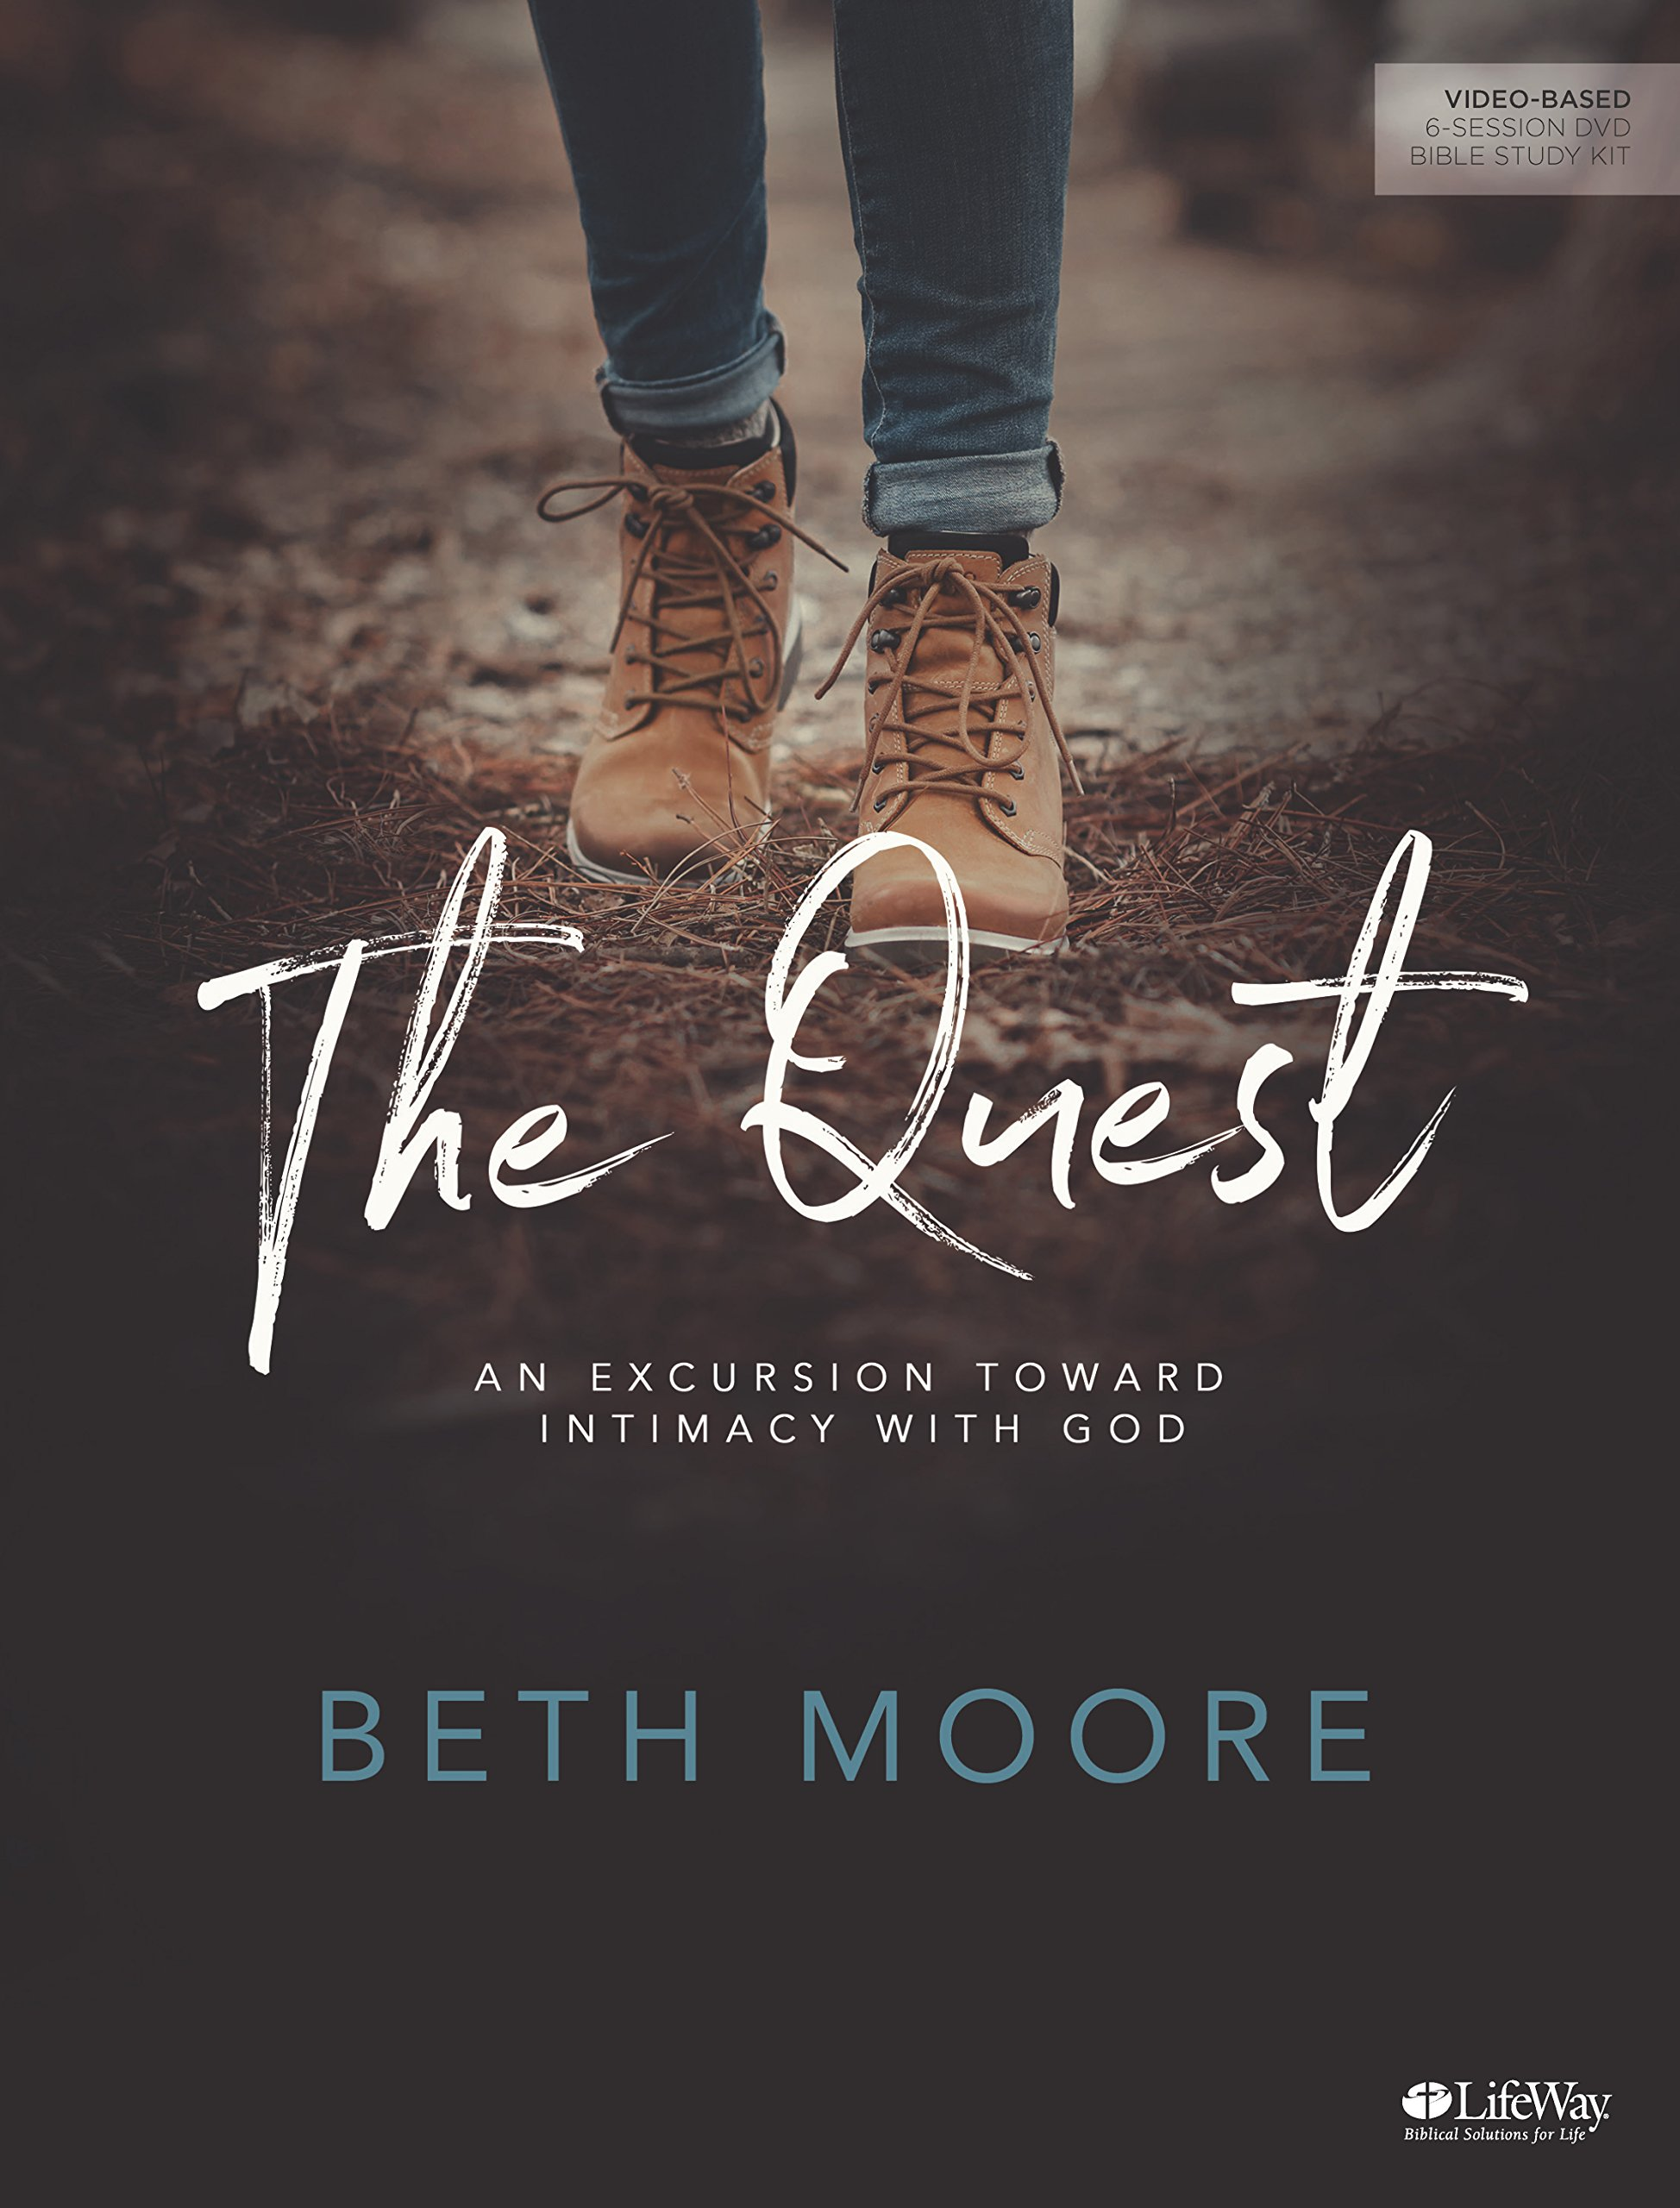 The Quest - Leader Kit: An Excursion Toward Intimacy with God: Beth Moore:  9781462766611: Amazon.com: Books